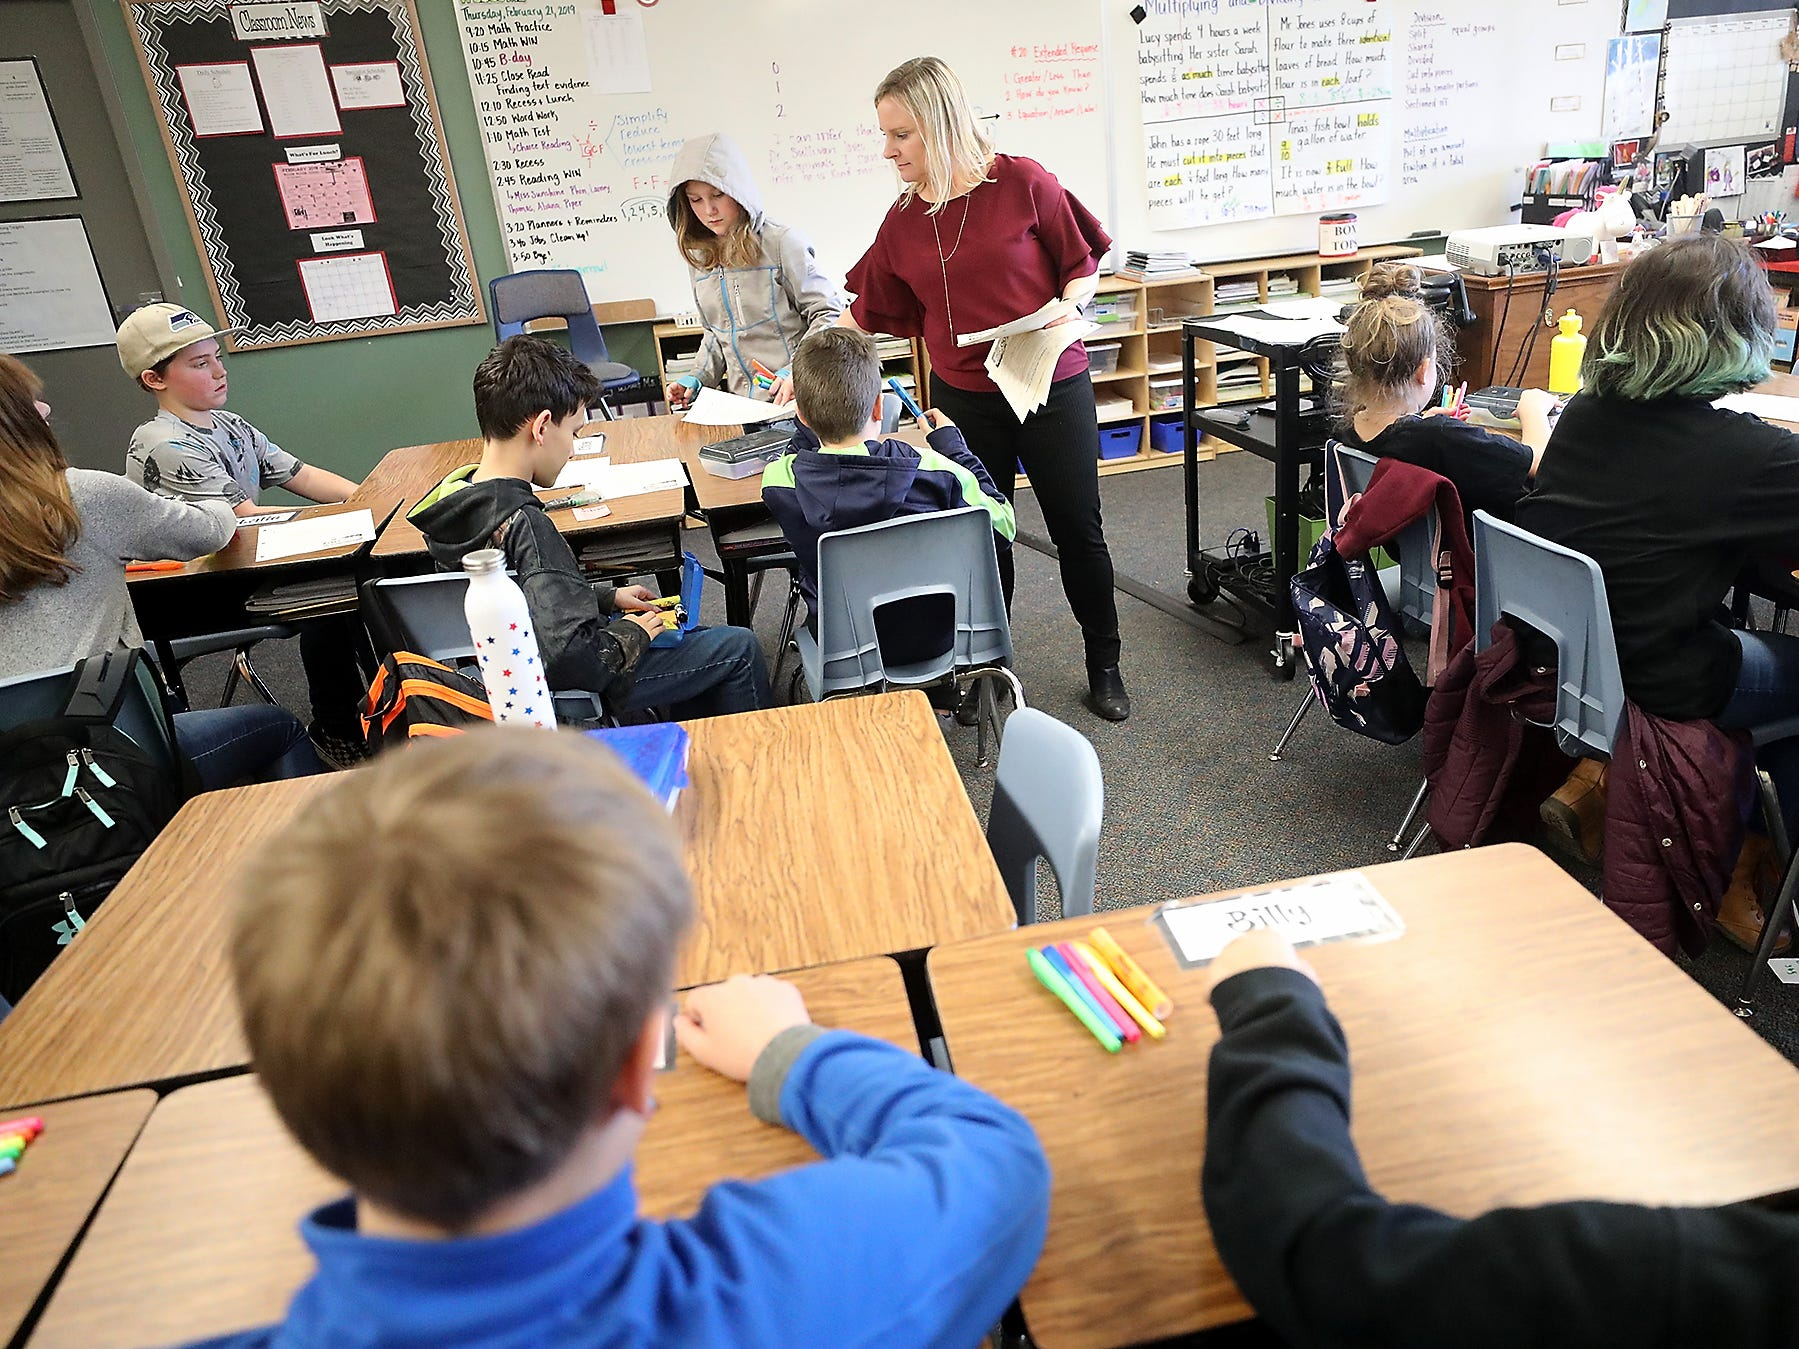 Fifth grade teacher Kristy Dressler passes out assignments during class at Suquamish Elementary School on Thursday, February 21, 2019.